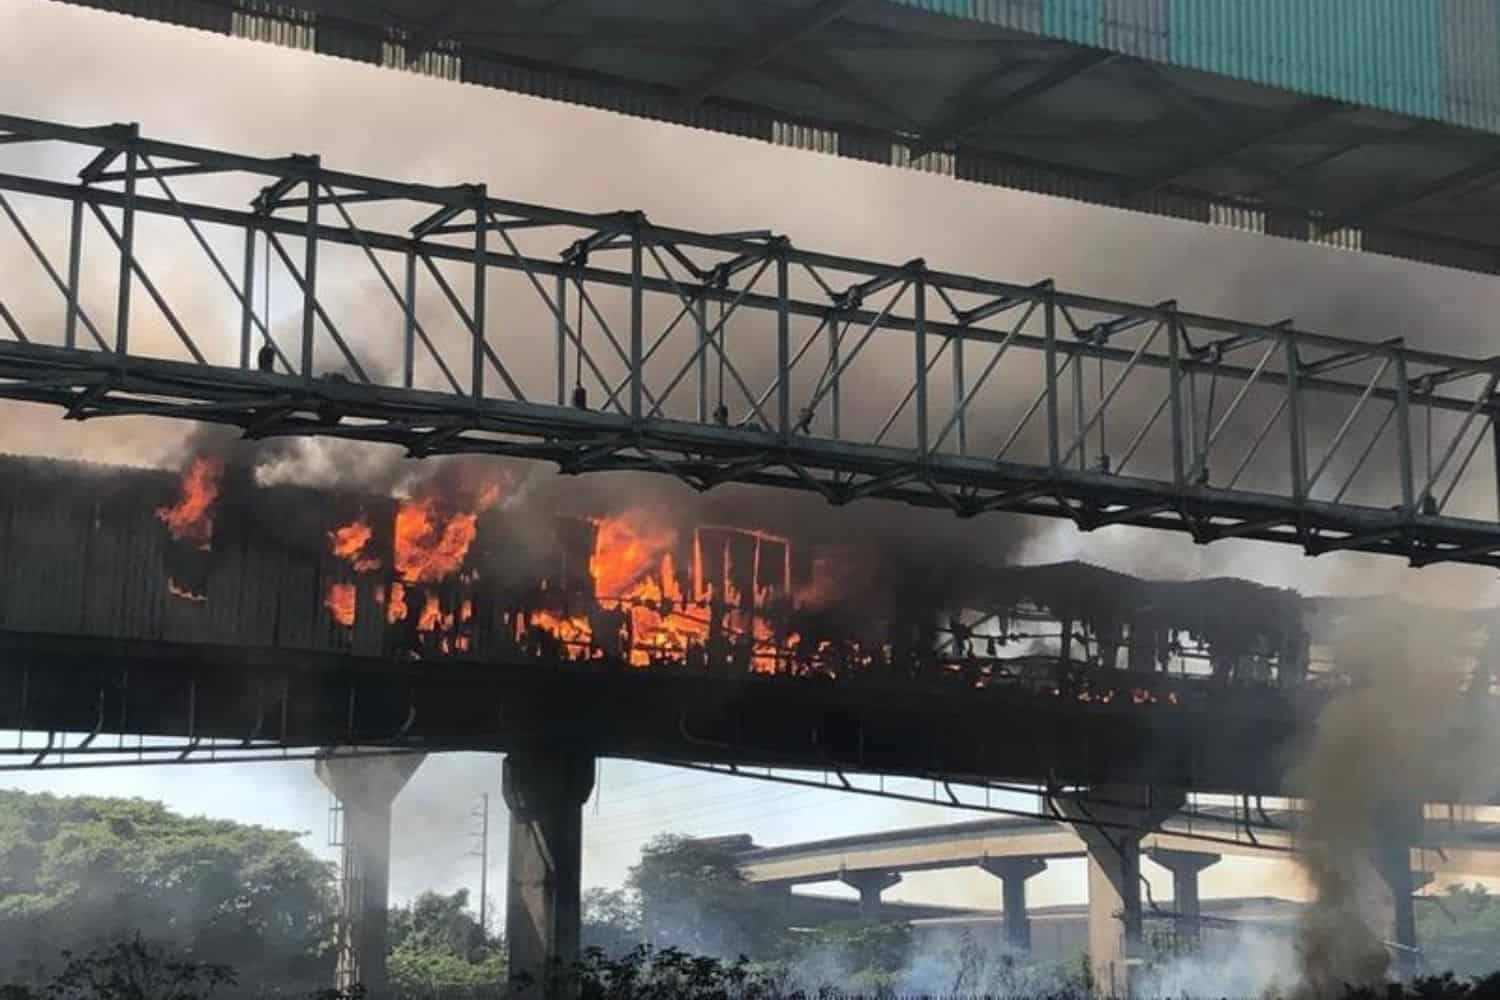 WATCH: Second fire in two weeks rages at Port of Richards Bay